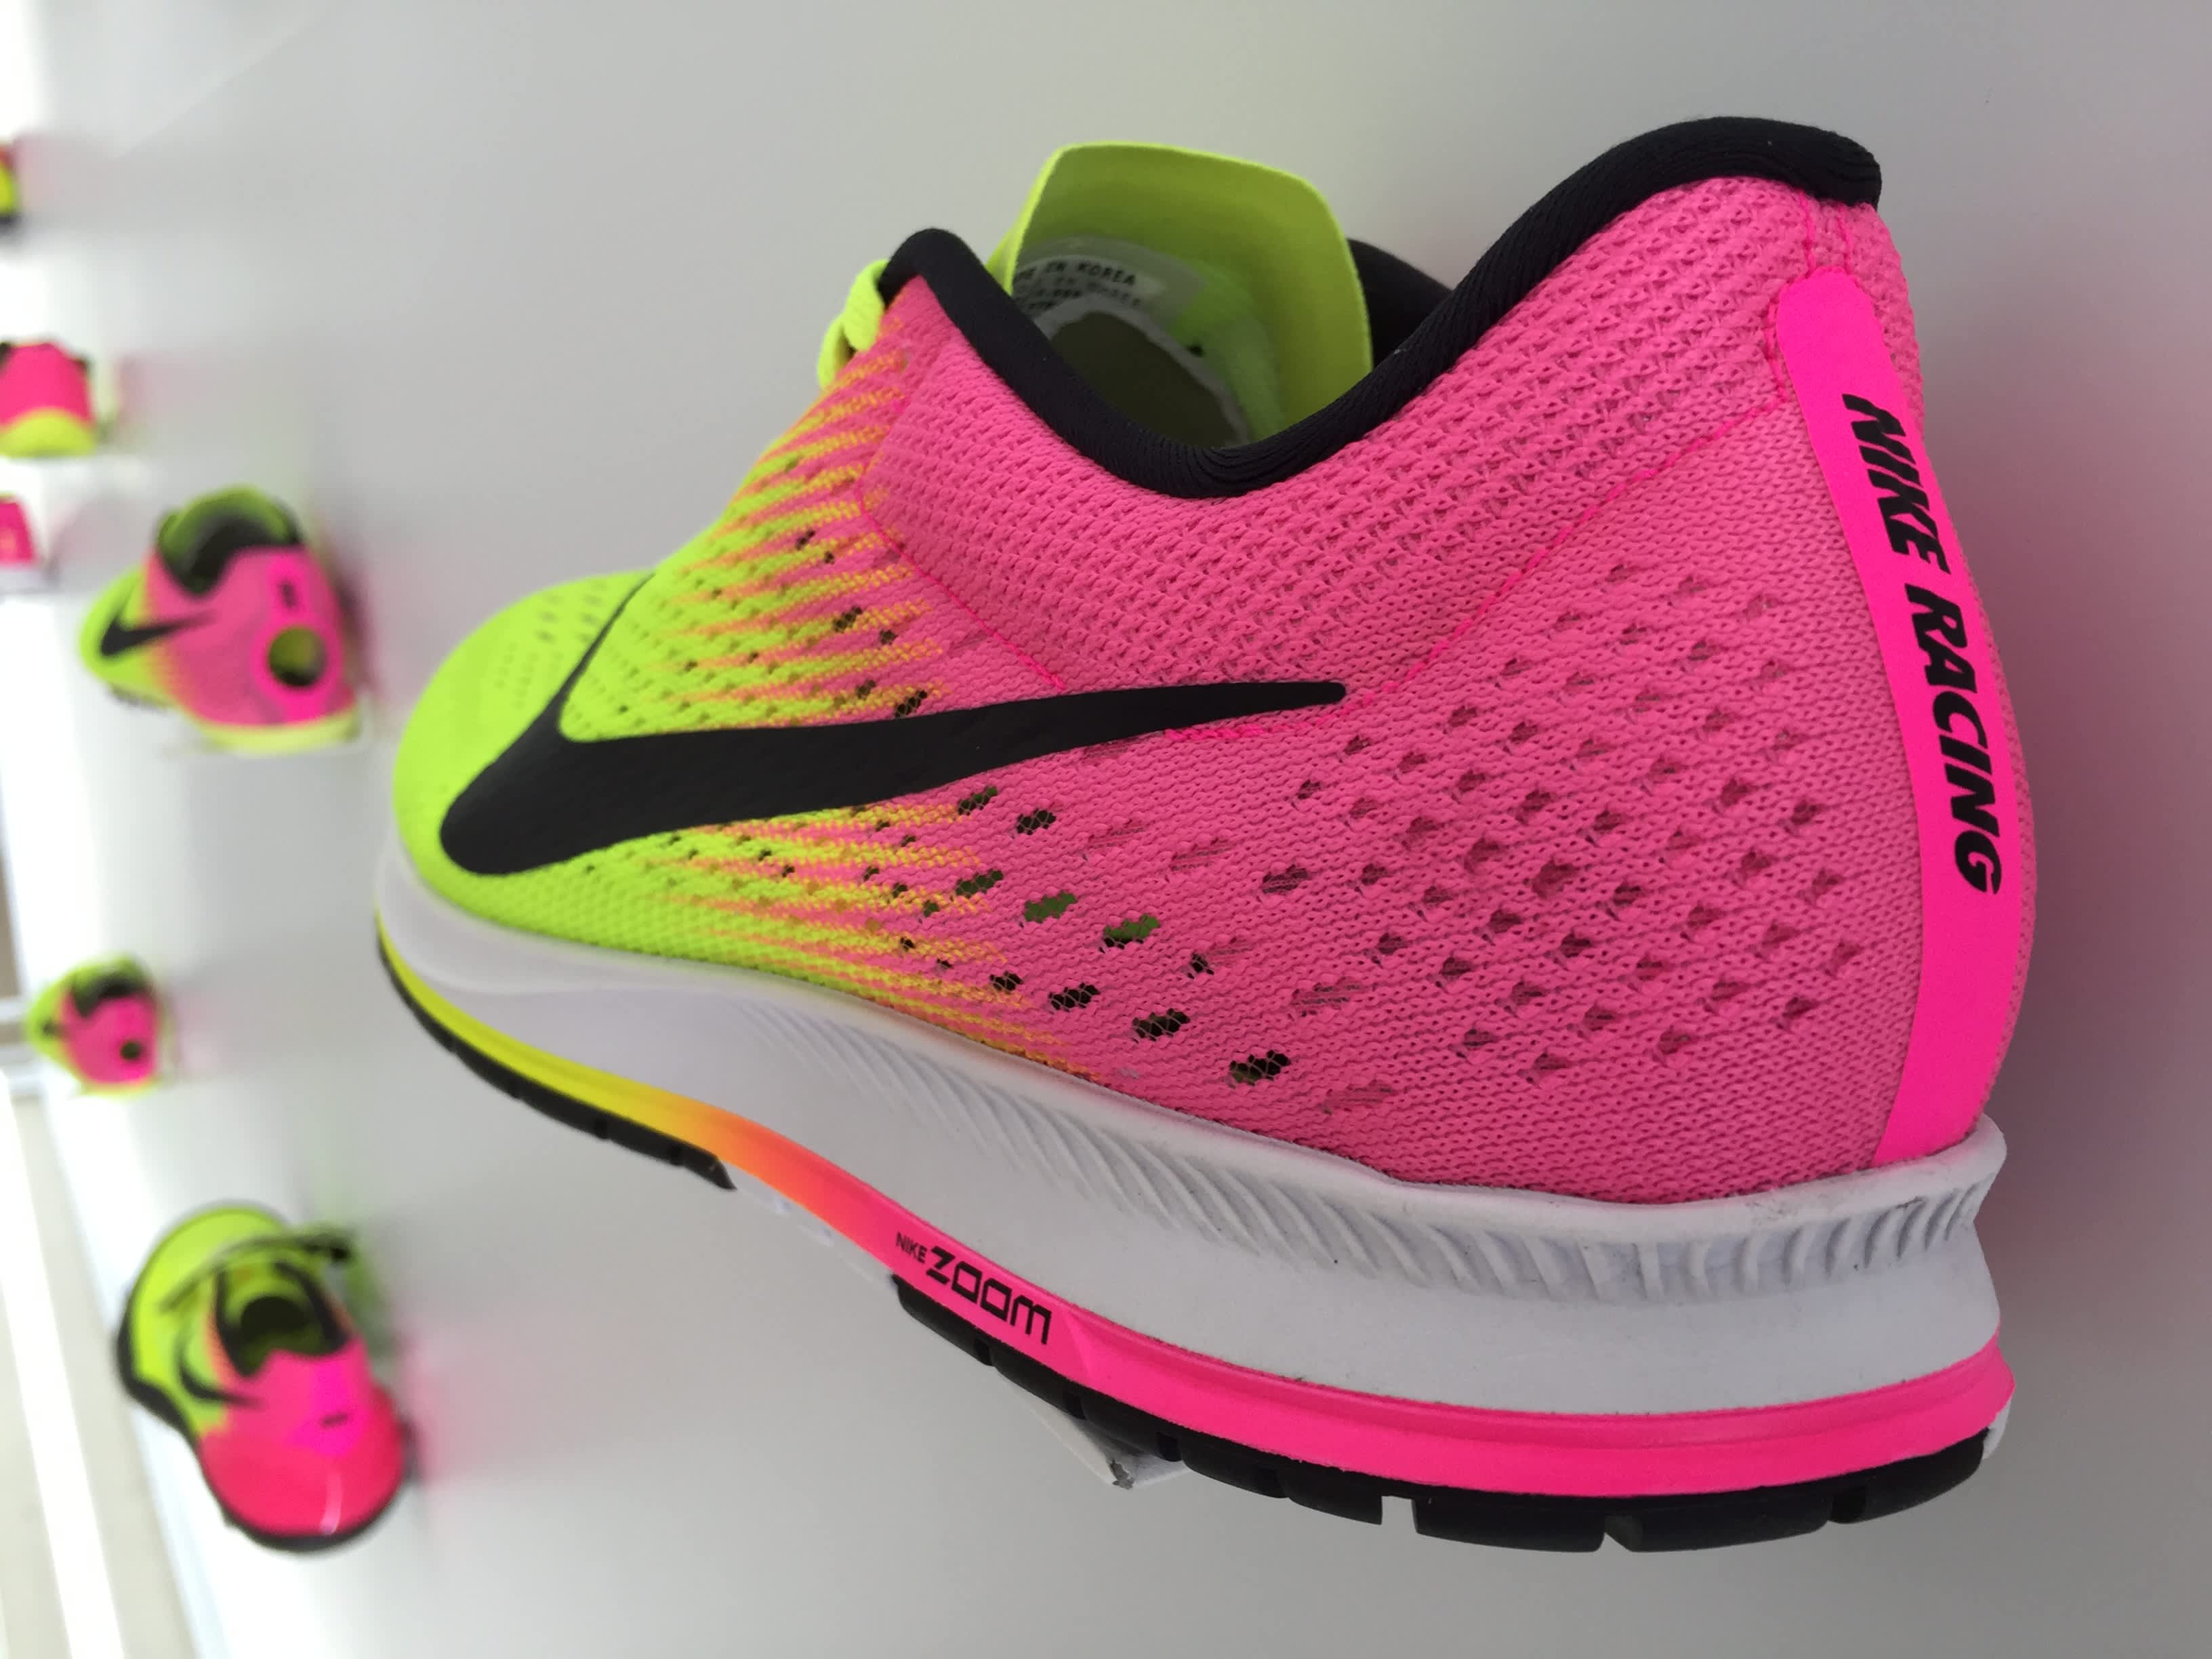 1b3acaee761ff Nike s Olympic challenge  Making gear for gold medalists ... and for us